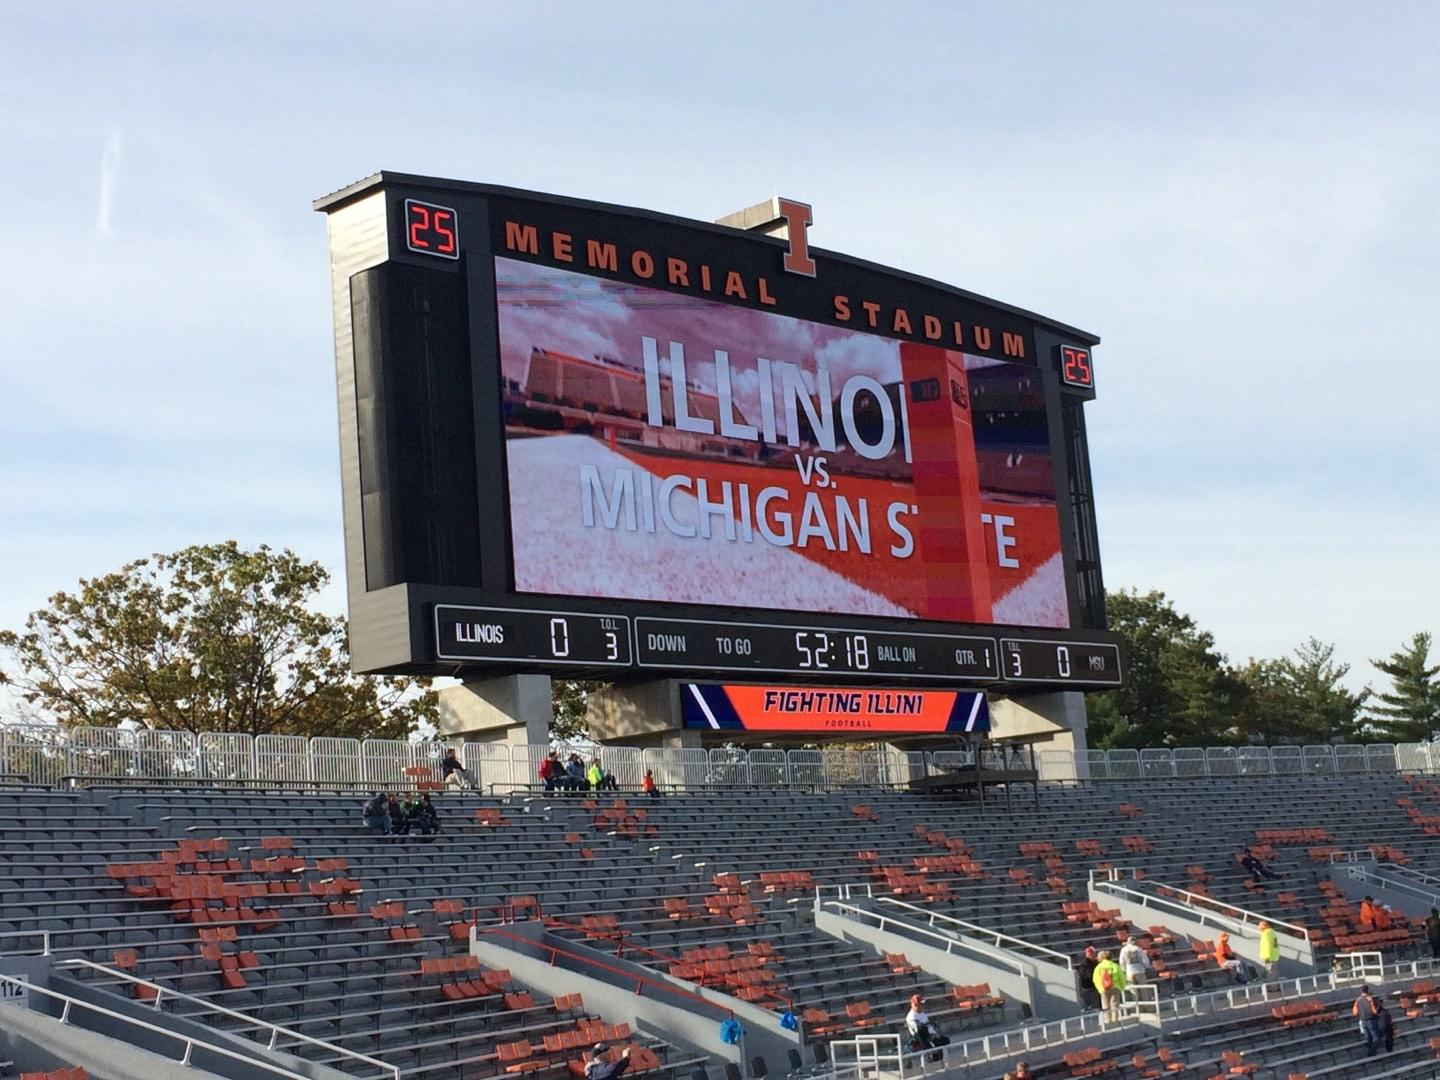 Memorial Stadium (Champaign) Section 109 Row 32 Seat 20